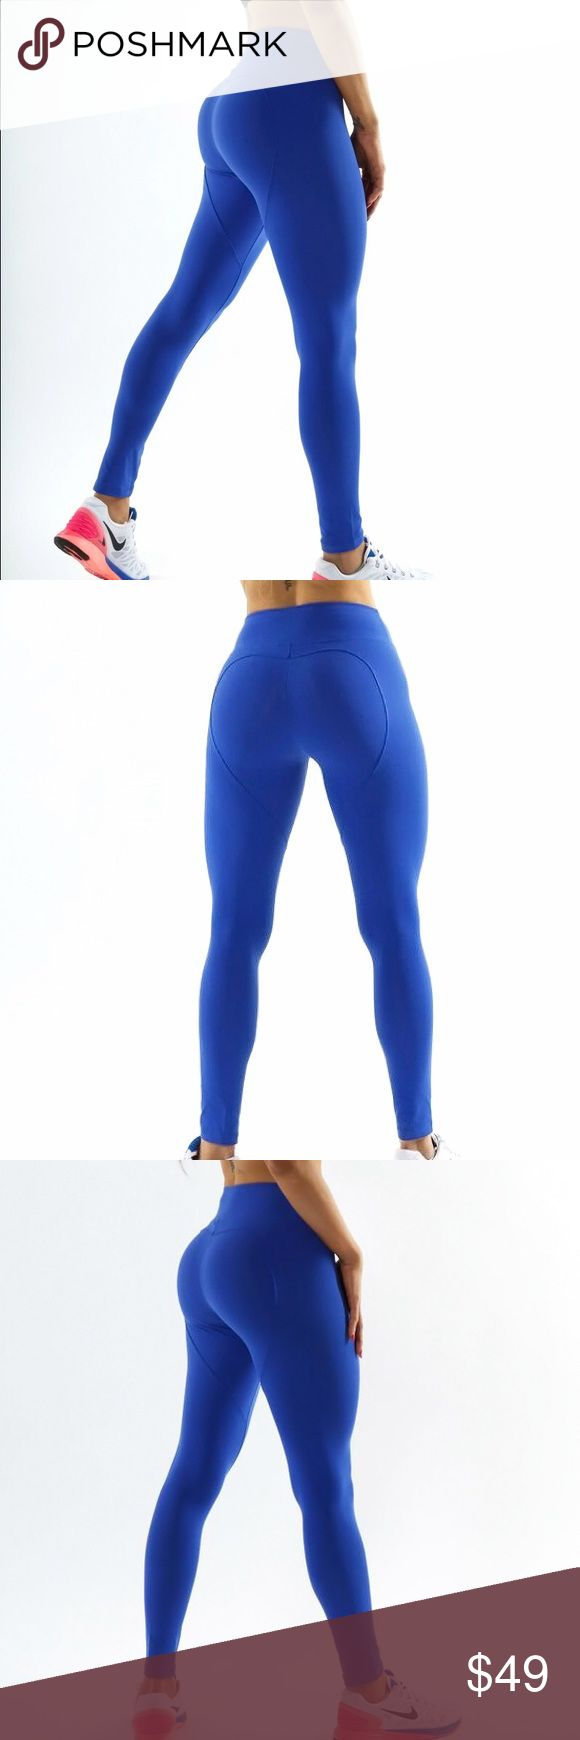 J. Fitness Royal Blue Heartcore Leggings Not lulu lemon. They are a high quality boutique brand! Description from manufacturers website: Heart Shape Buttoms  High Waisted Support  100% Supplex.                                                     Tags for exposure: lulu lemon / Nike / electric yoga lululemon athletica Pants Leggings